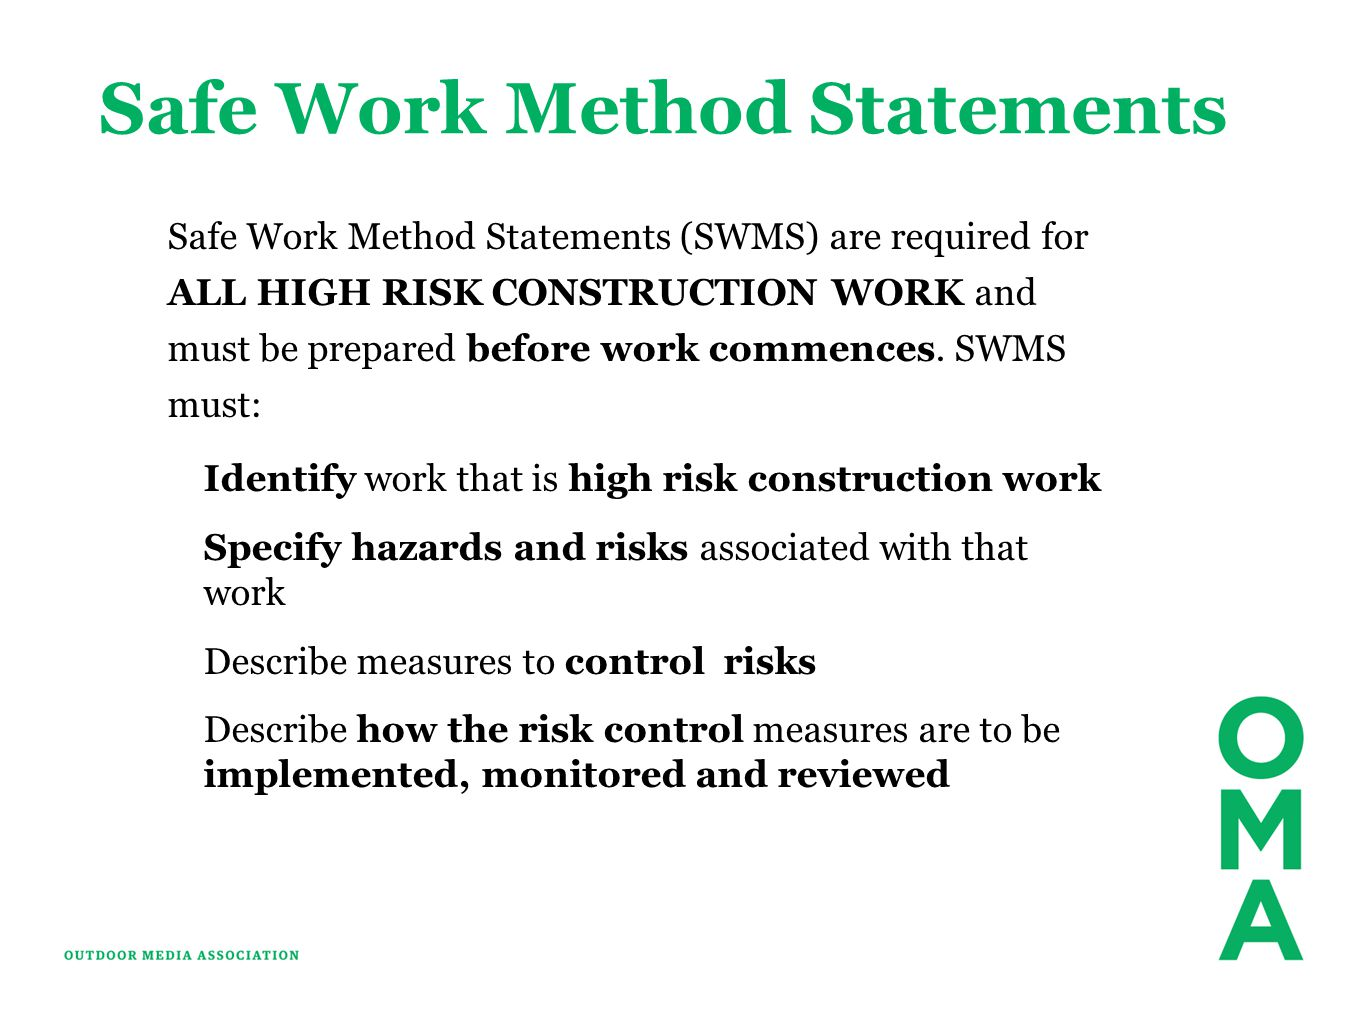 Safe Work Method Statements Safe Work Method Statements (SWMS) are required for ALL HIGH RISK CONSTRUCTION WORK and must be prepared before work commences.